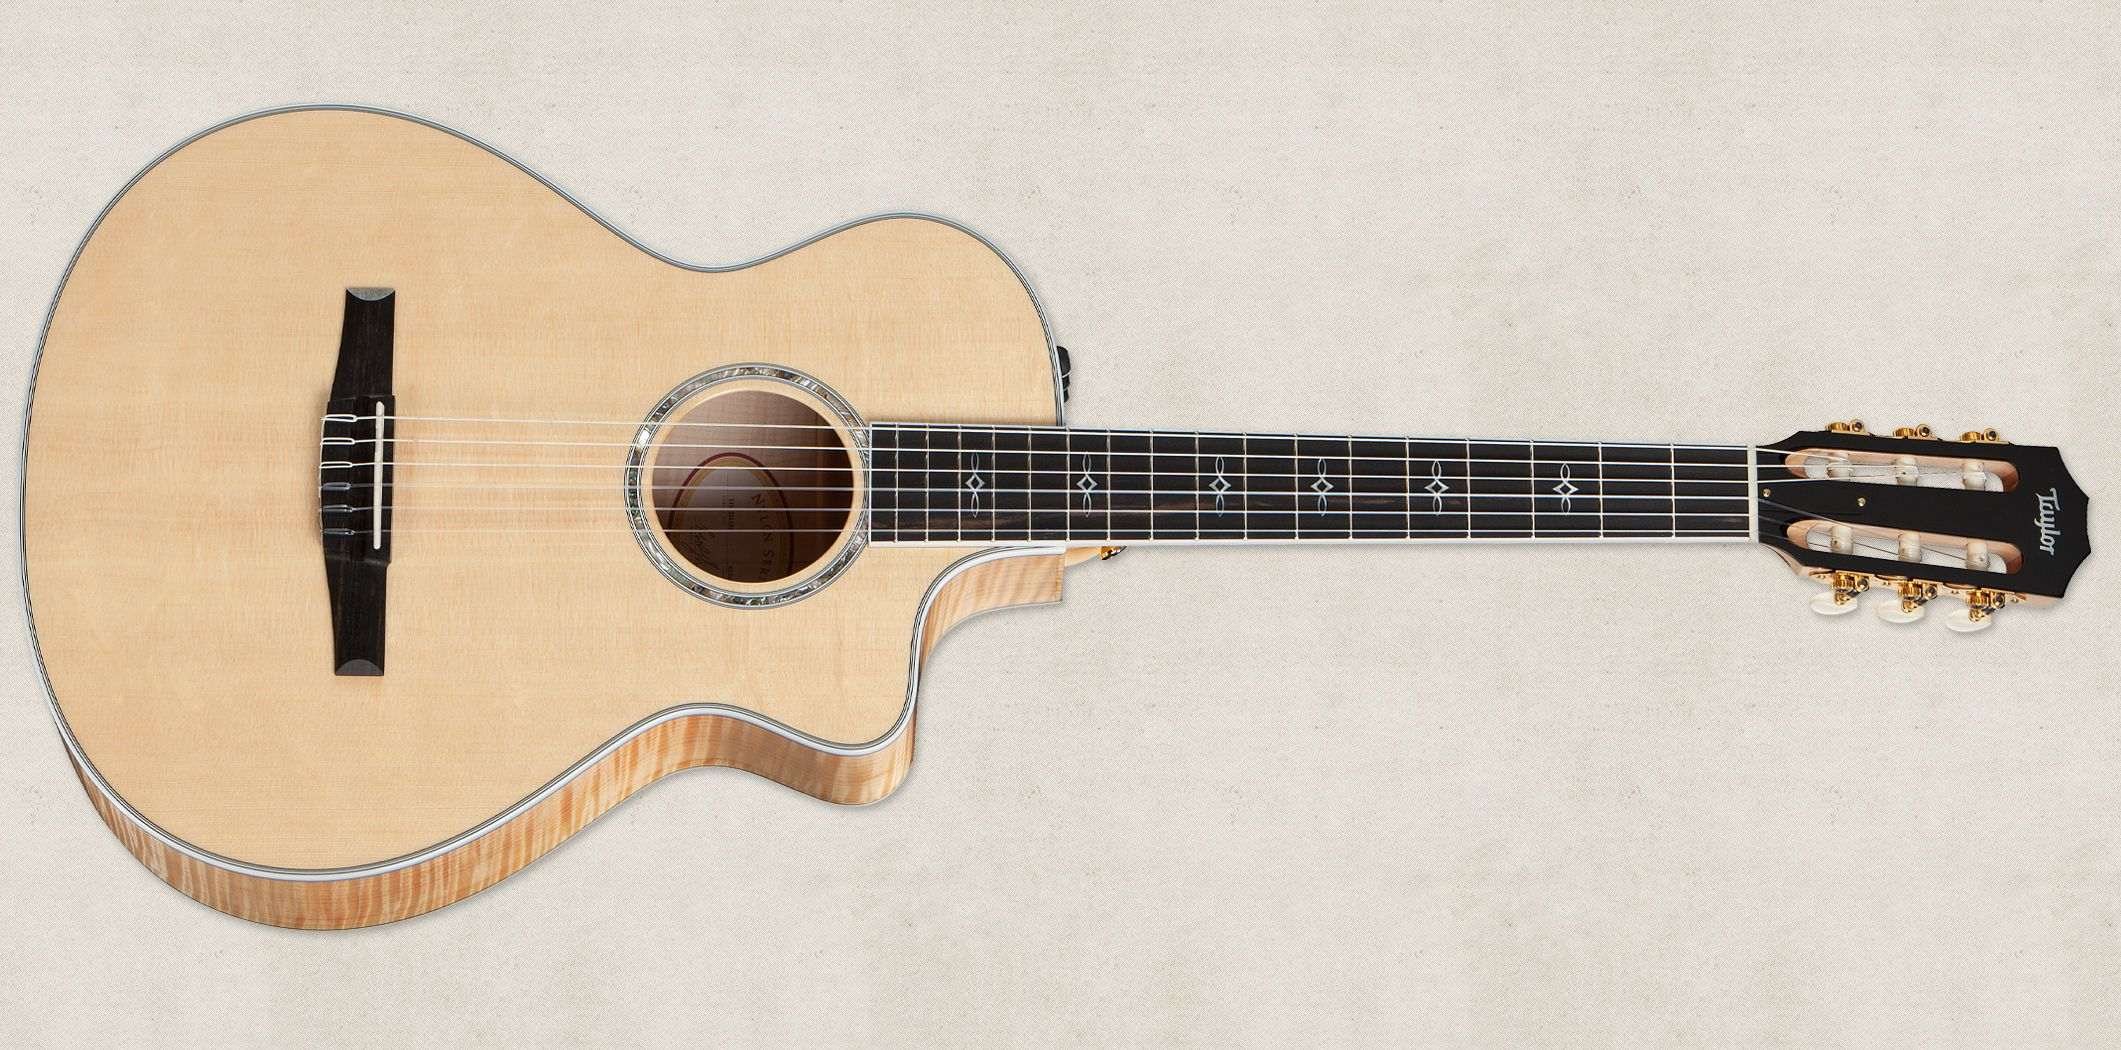 The Taylor Swift Baby TSBT Guitar Was Inspired By Swifts Memories Of Writing Songs On Her Own As Good Its Name This Guit